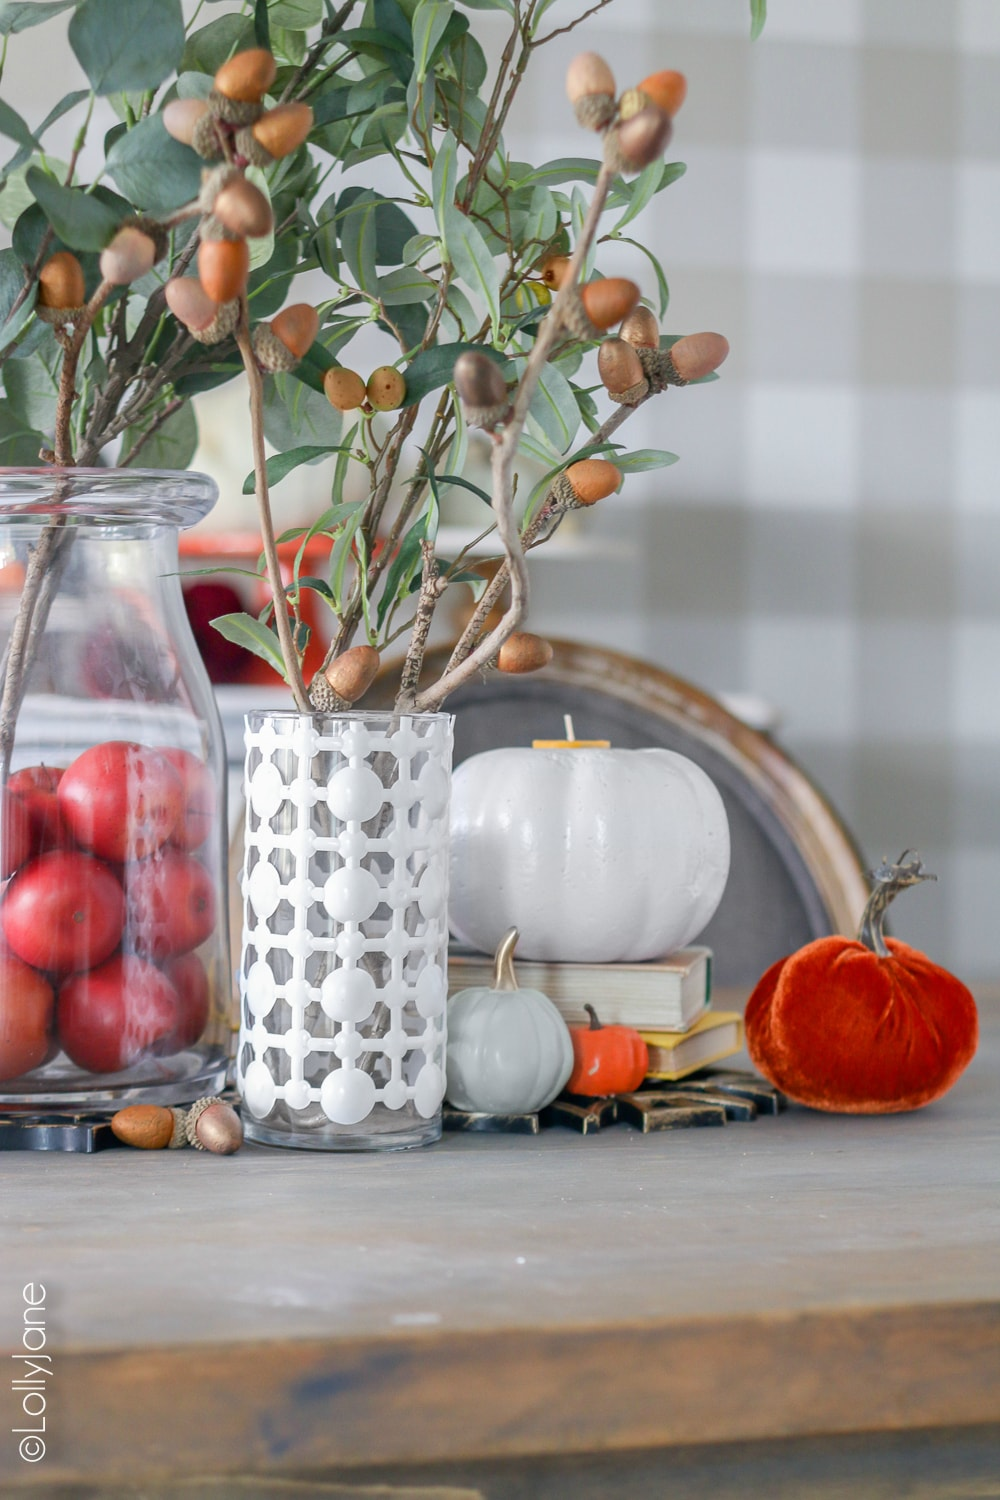 Get this high end look for pennies... most of this easy tablescape was purchased from the dollar store but looks high end! WOW! #diy #easycrafts #falldecor #falldecorations #tablescape